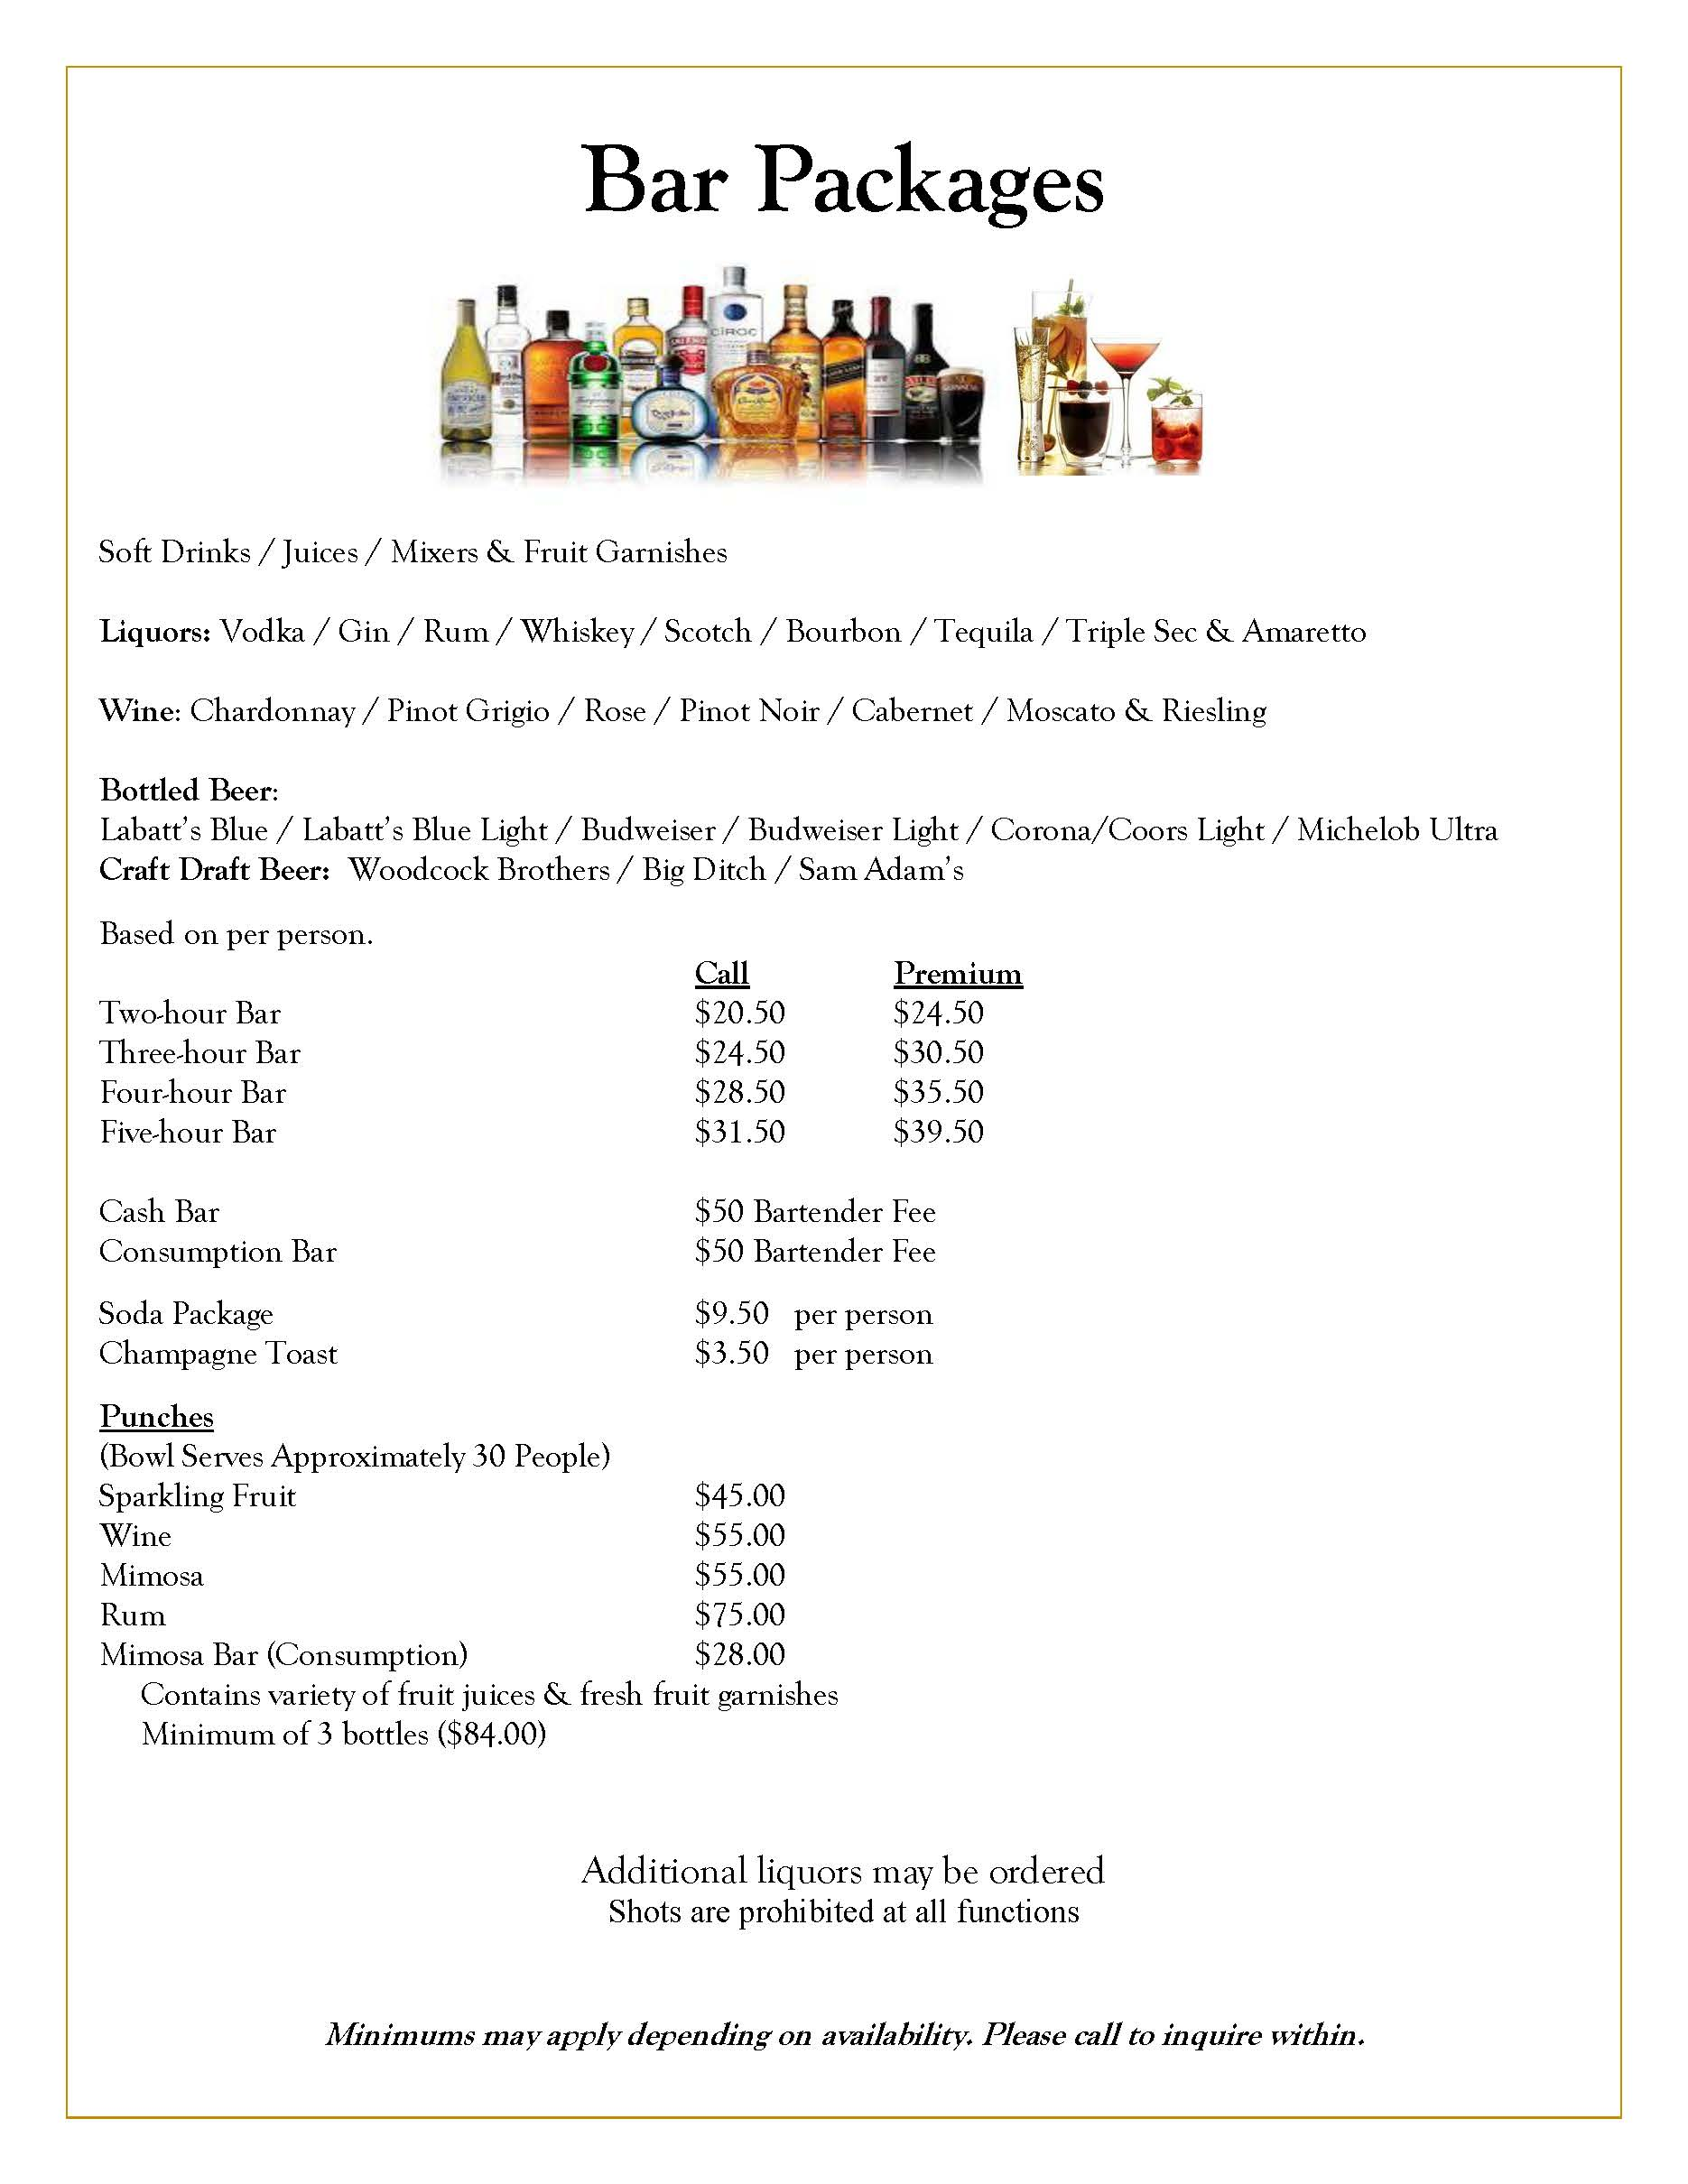 Dinner Banquets Bar Package